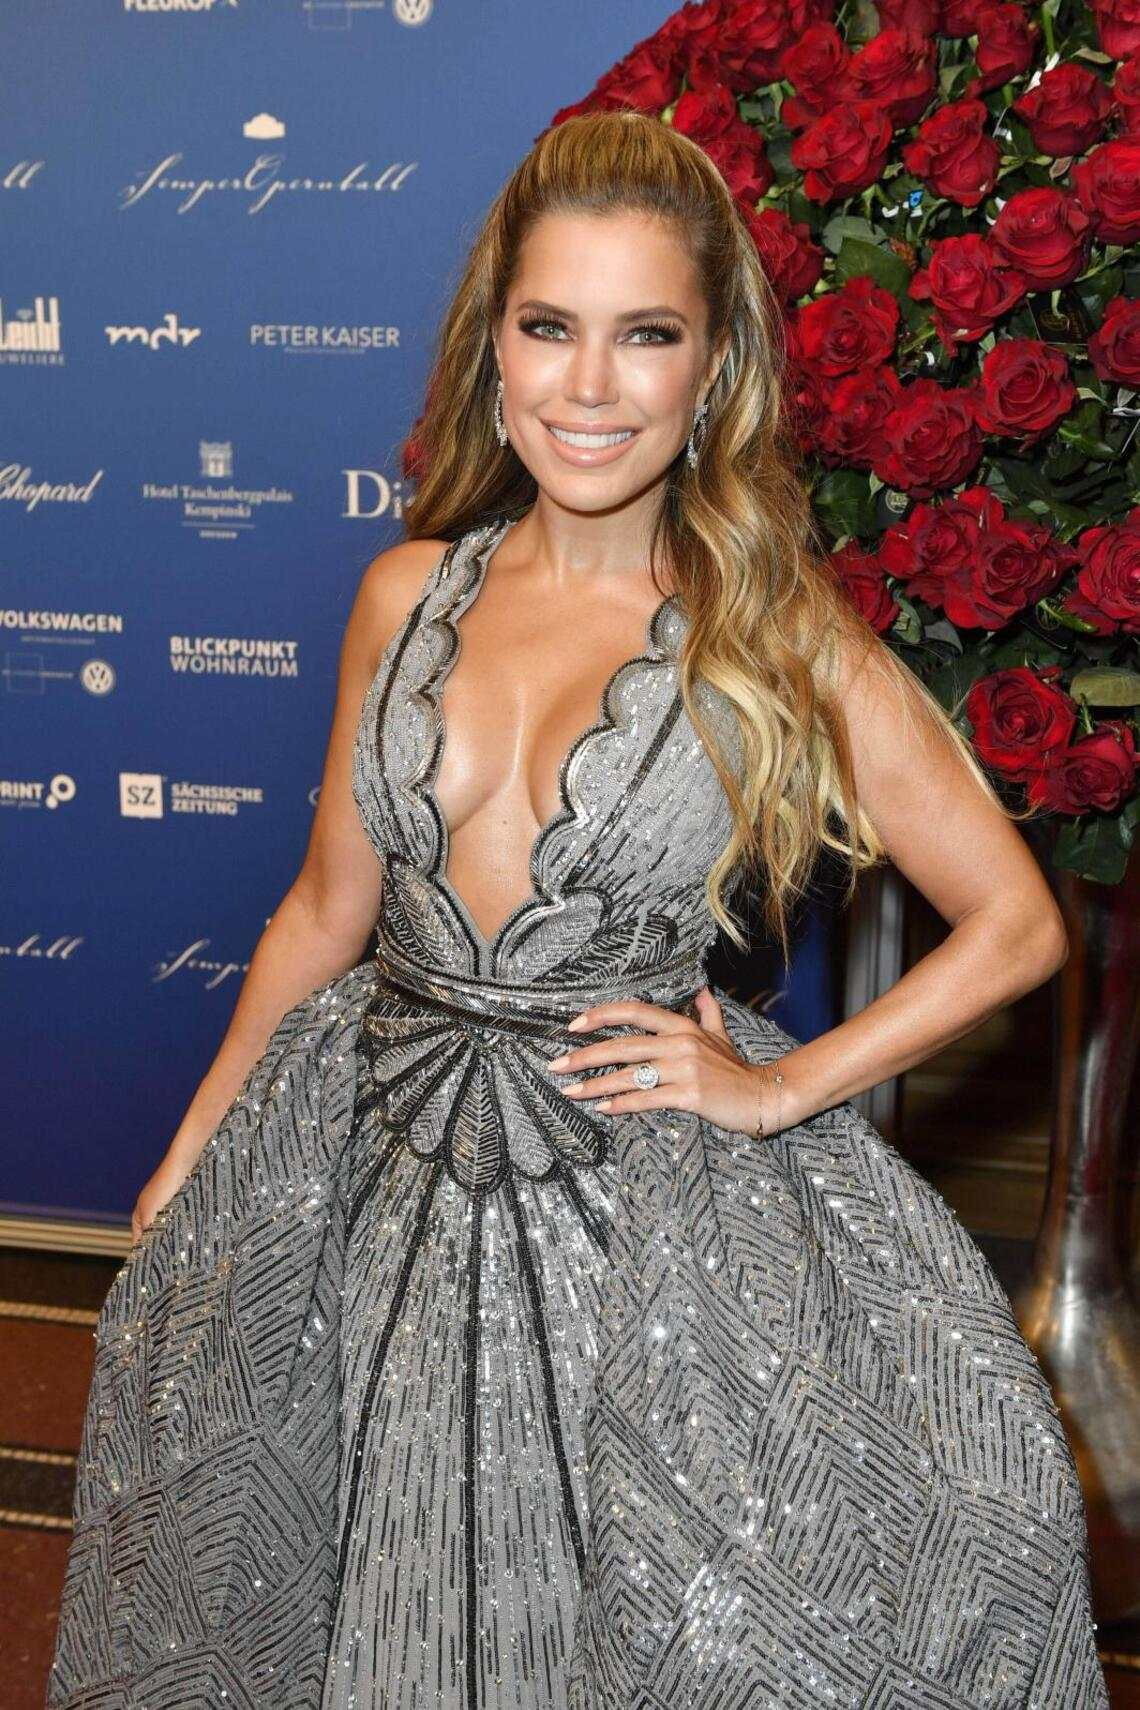 Sylvie Meis am Semperopernball in Dresden 2019